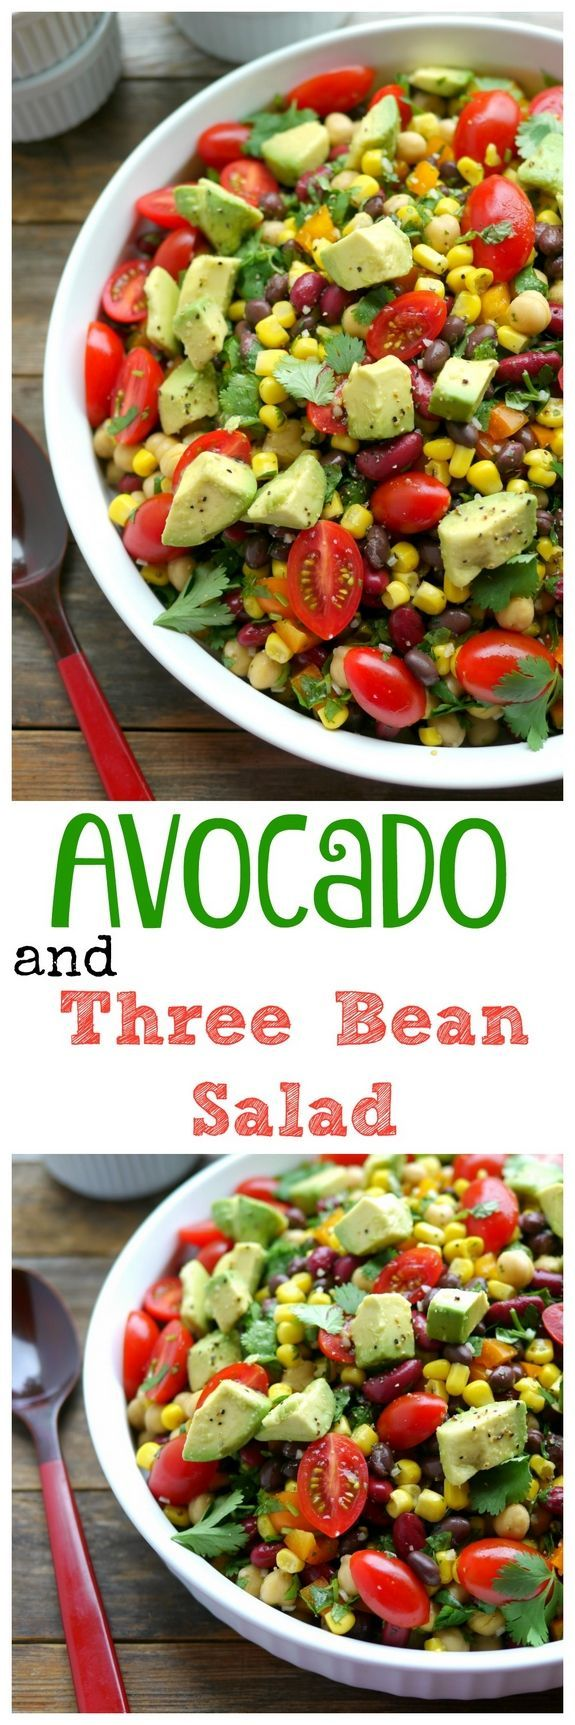 VIDEO + Recipe for Avocado and Three Bean Salad is the perfect side to so many meals. Light and refreshing you need to make this soon from NoblePig.com.